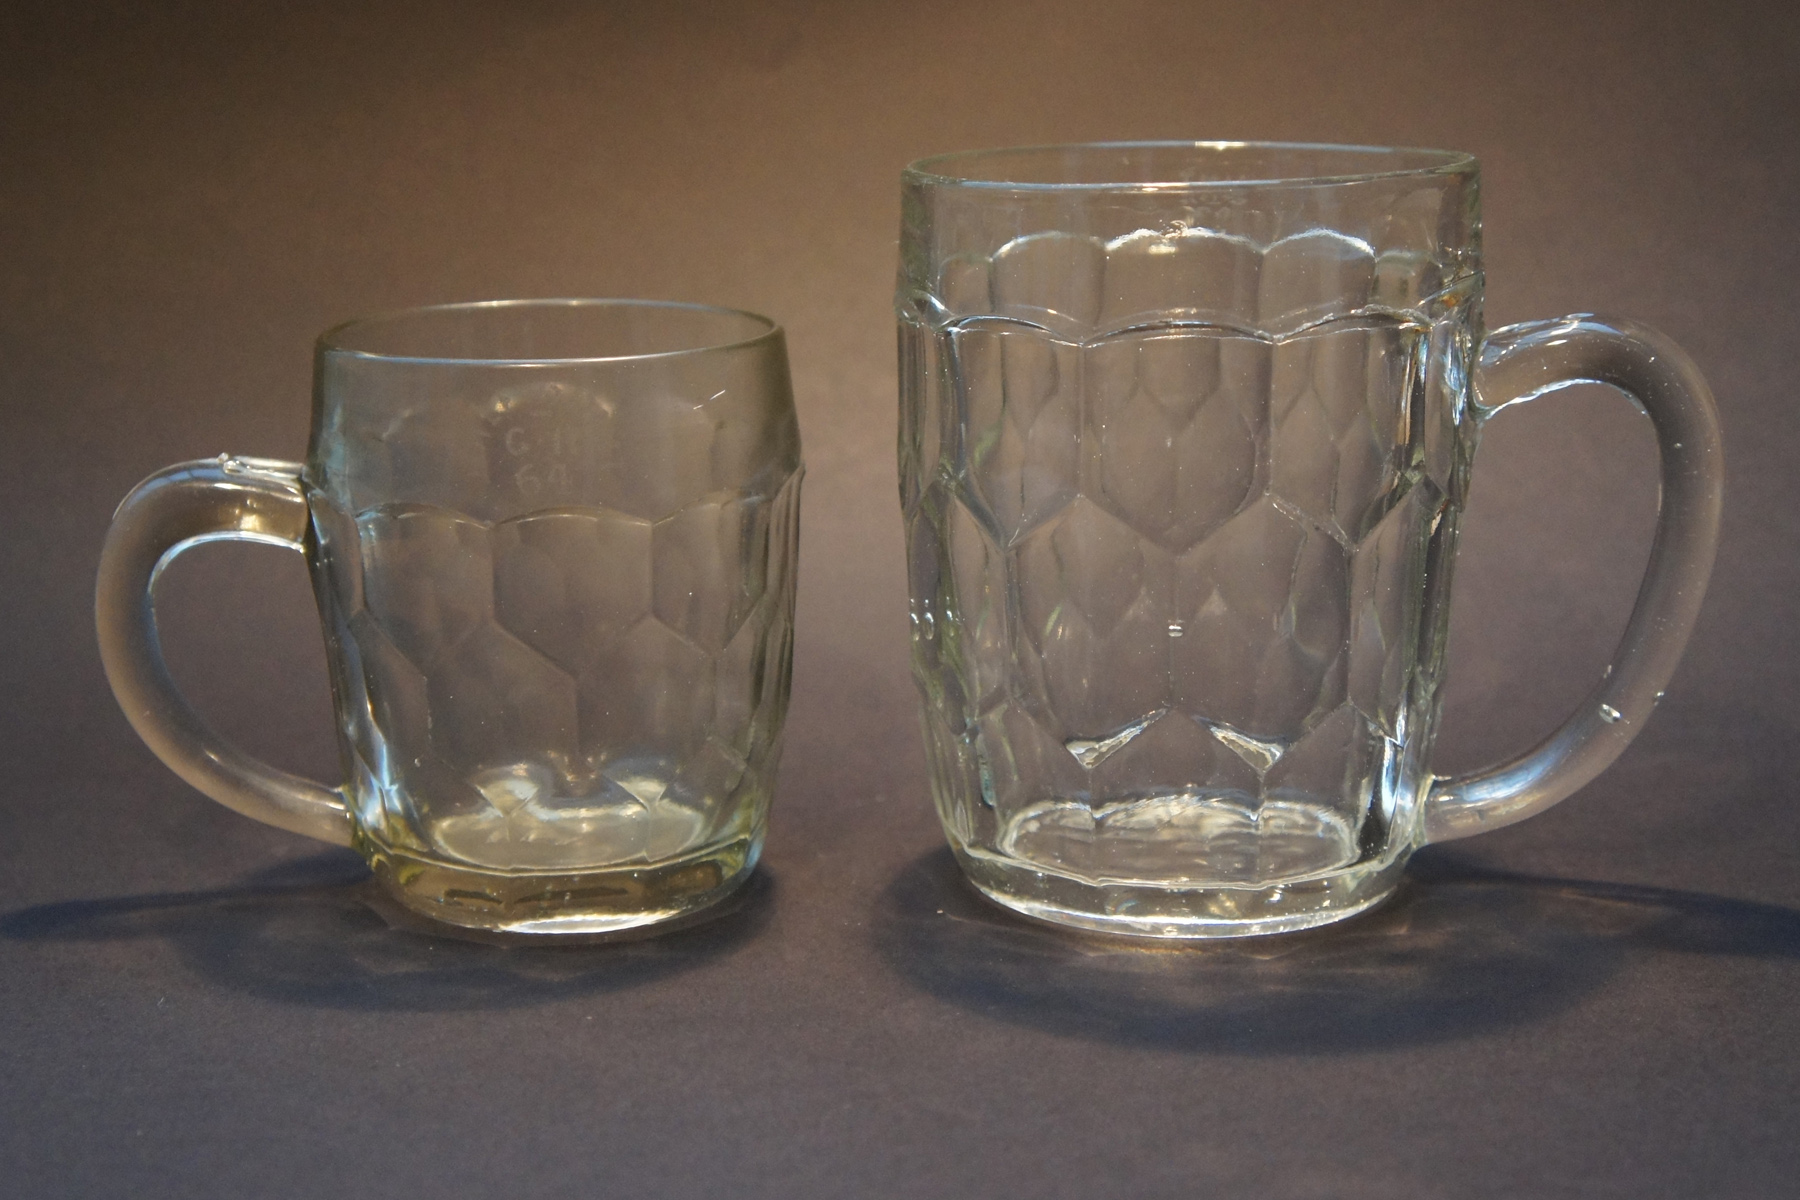 Pottery & Glass Charitable Vintage Cut Engraved Lead Glass Crystal Hand Blown Conical Pint Set 6 Rare